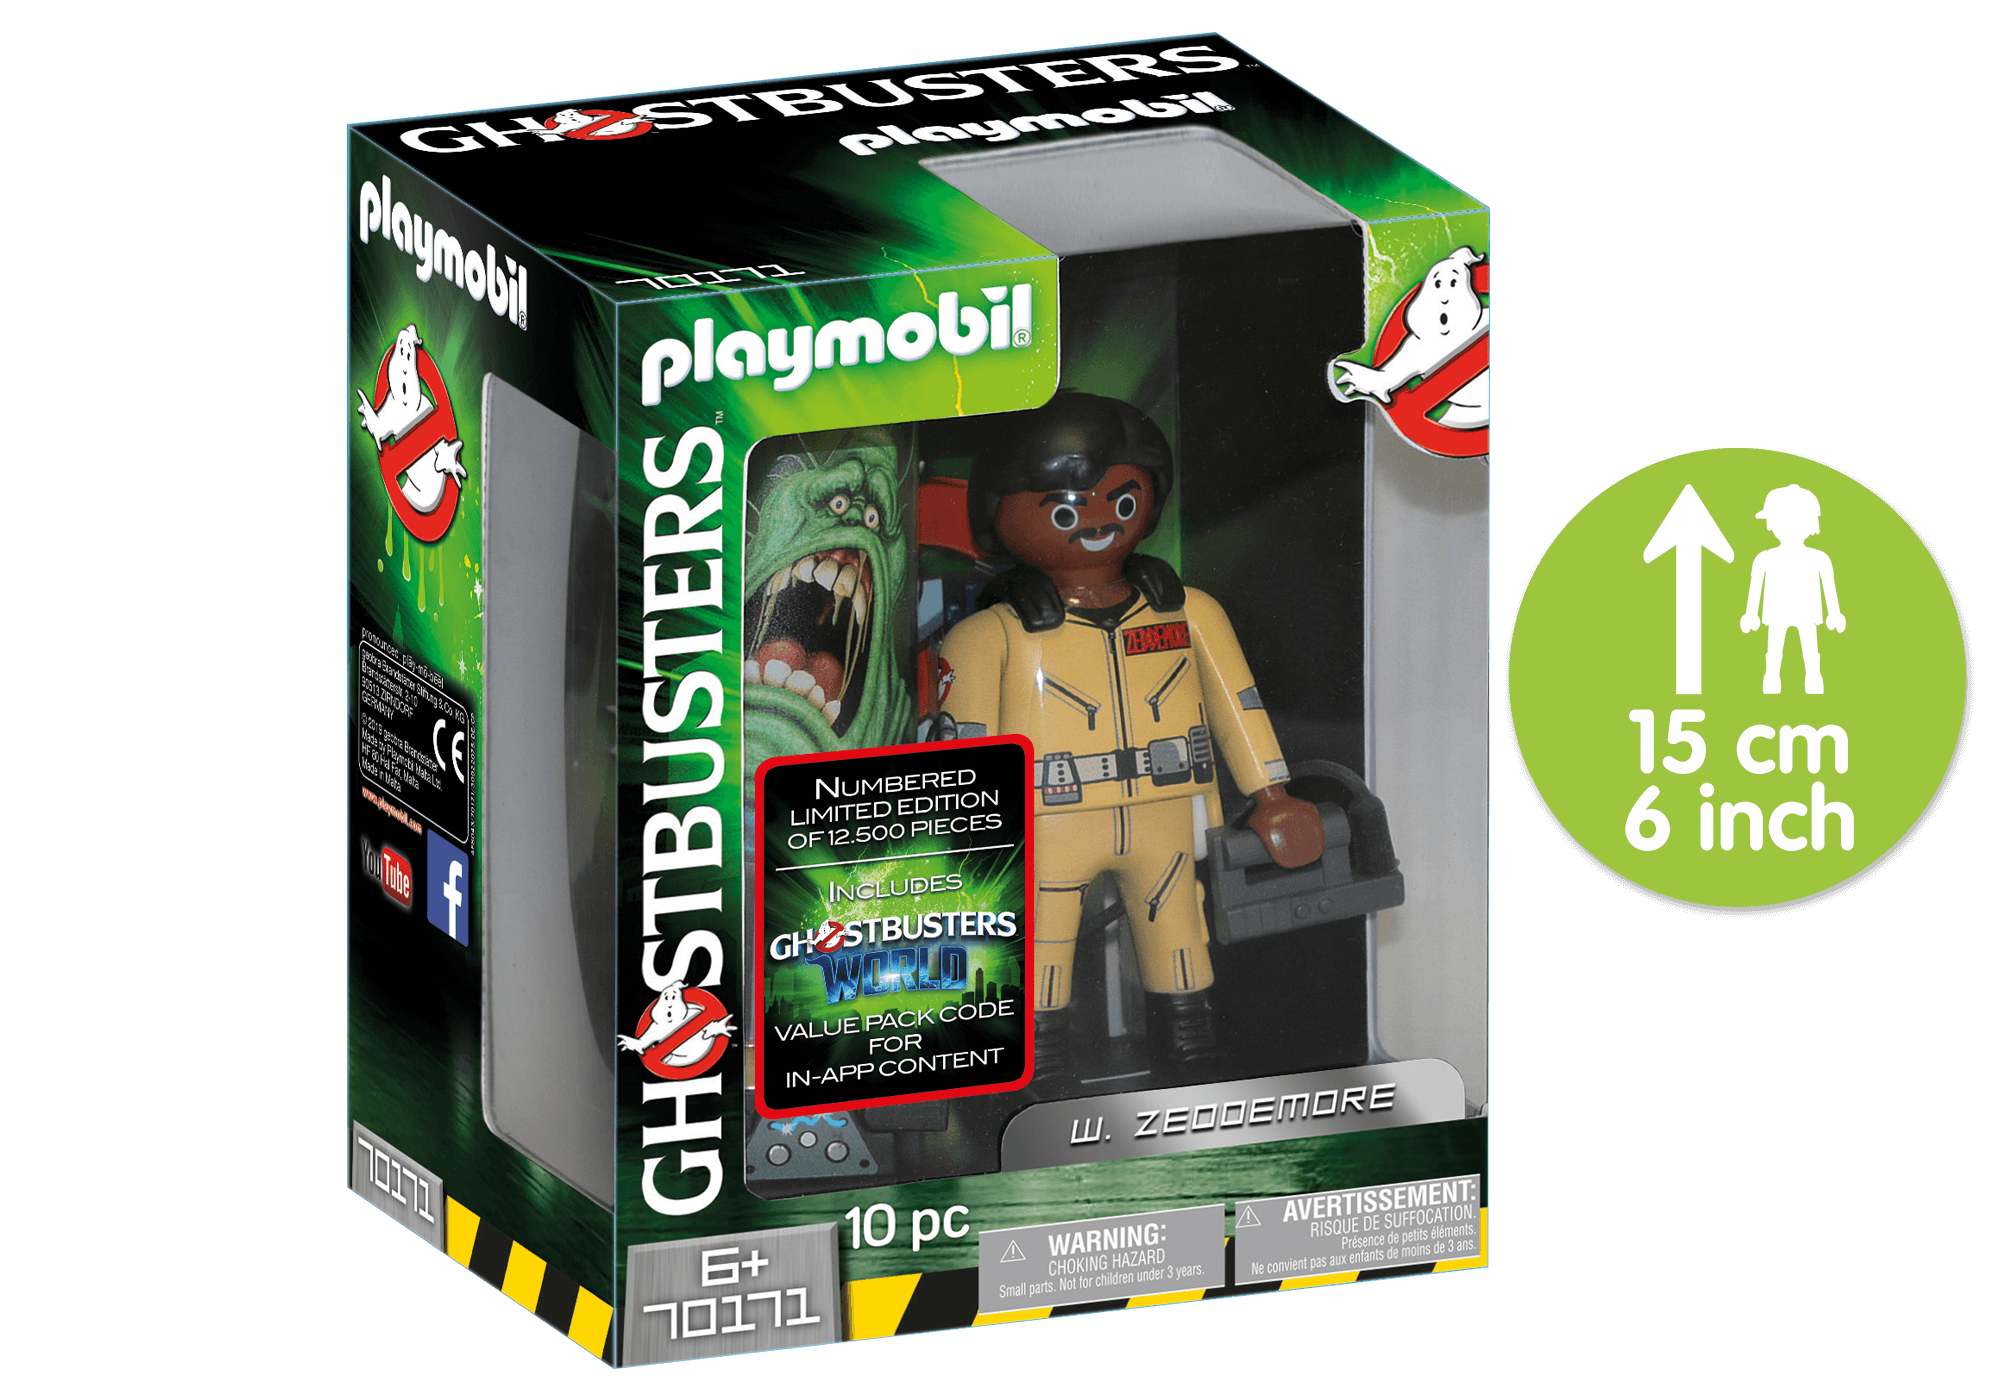 http://media.playmobil.com/i/playmobil/70171_product_detail/Ghostbusters™ Figura Coleccionable W. Zeddemore